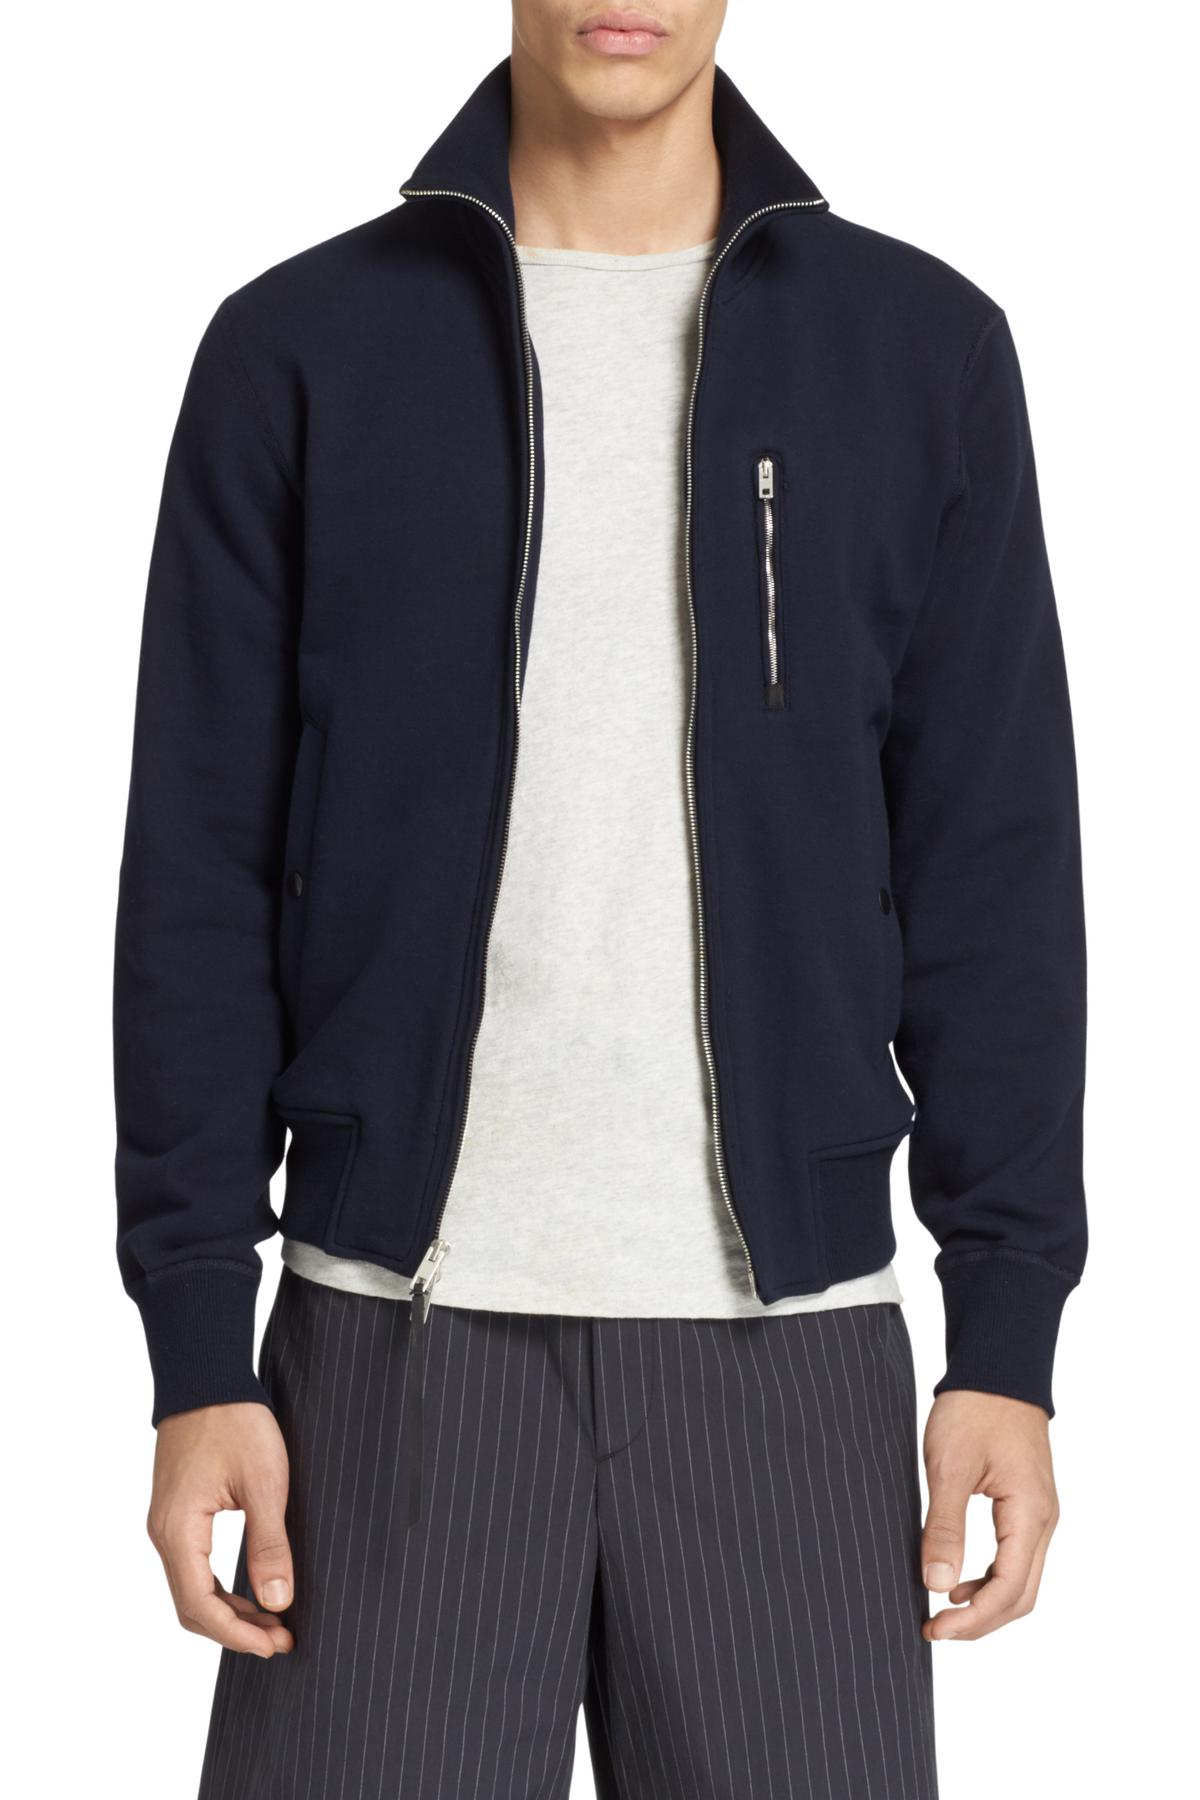 RAG & BONE TROOPER BOMBER JACKET